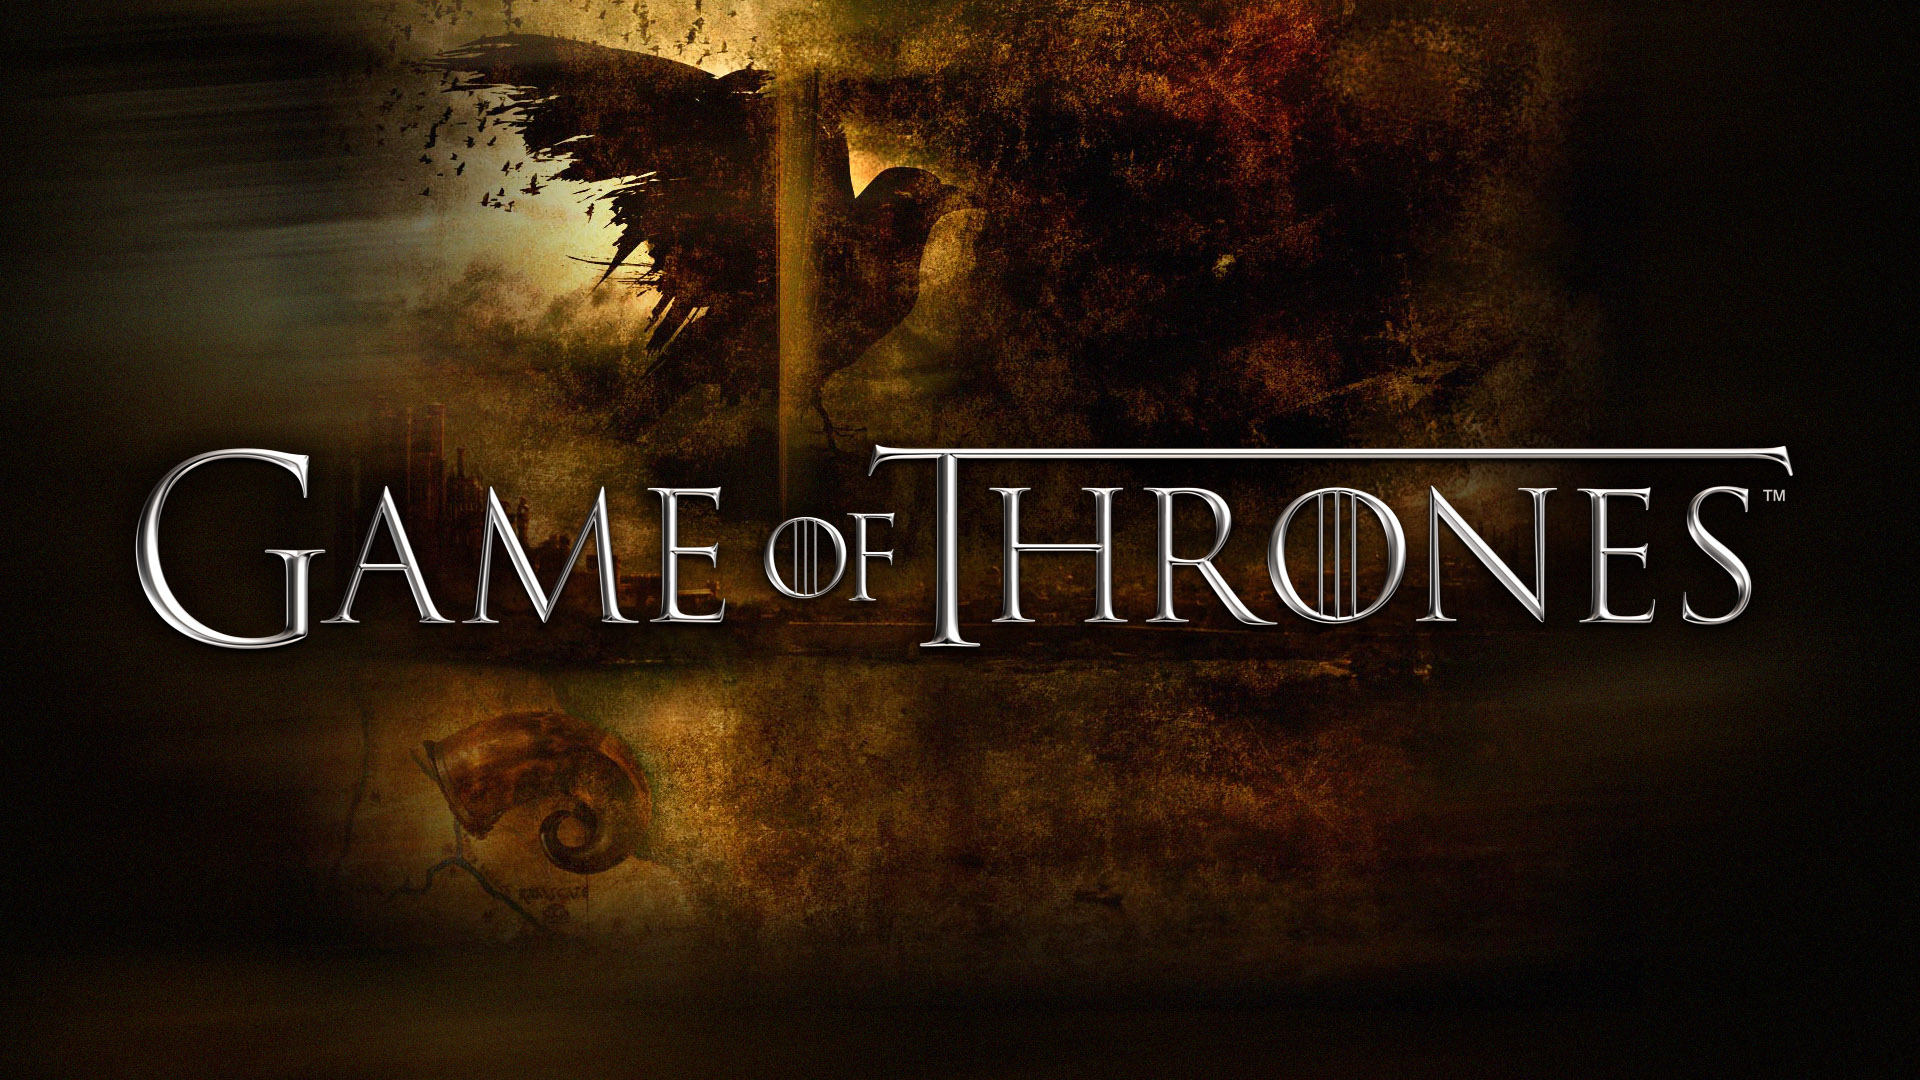 watch all game of thrones episodes online free